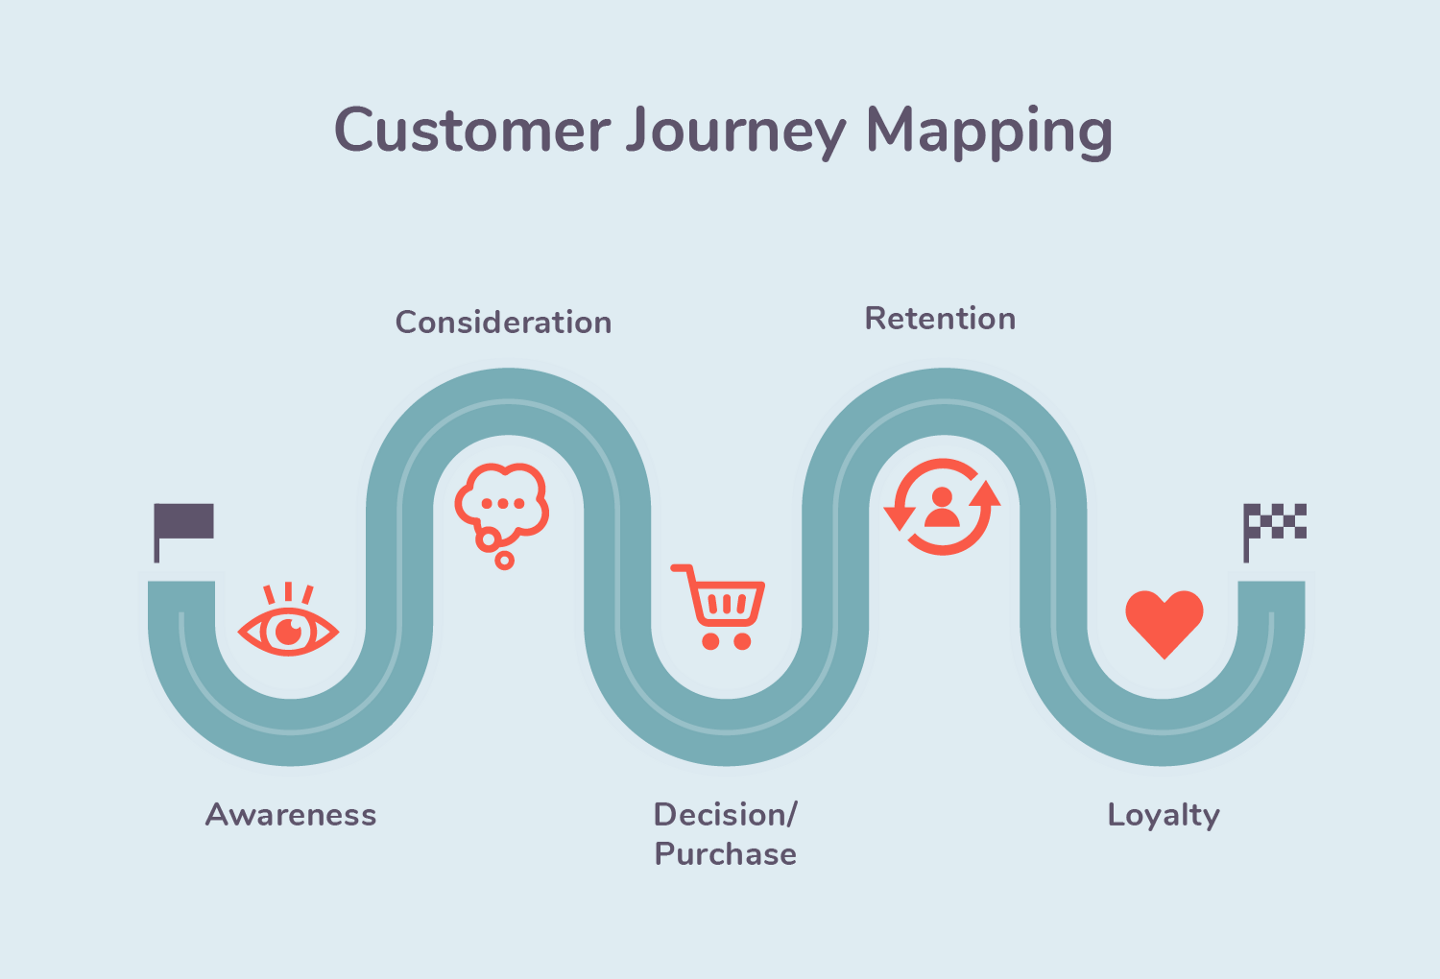 Based on your customer behavior analysis, you should follow different tactics for each stage